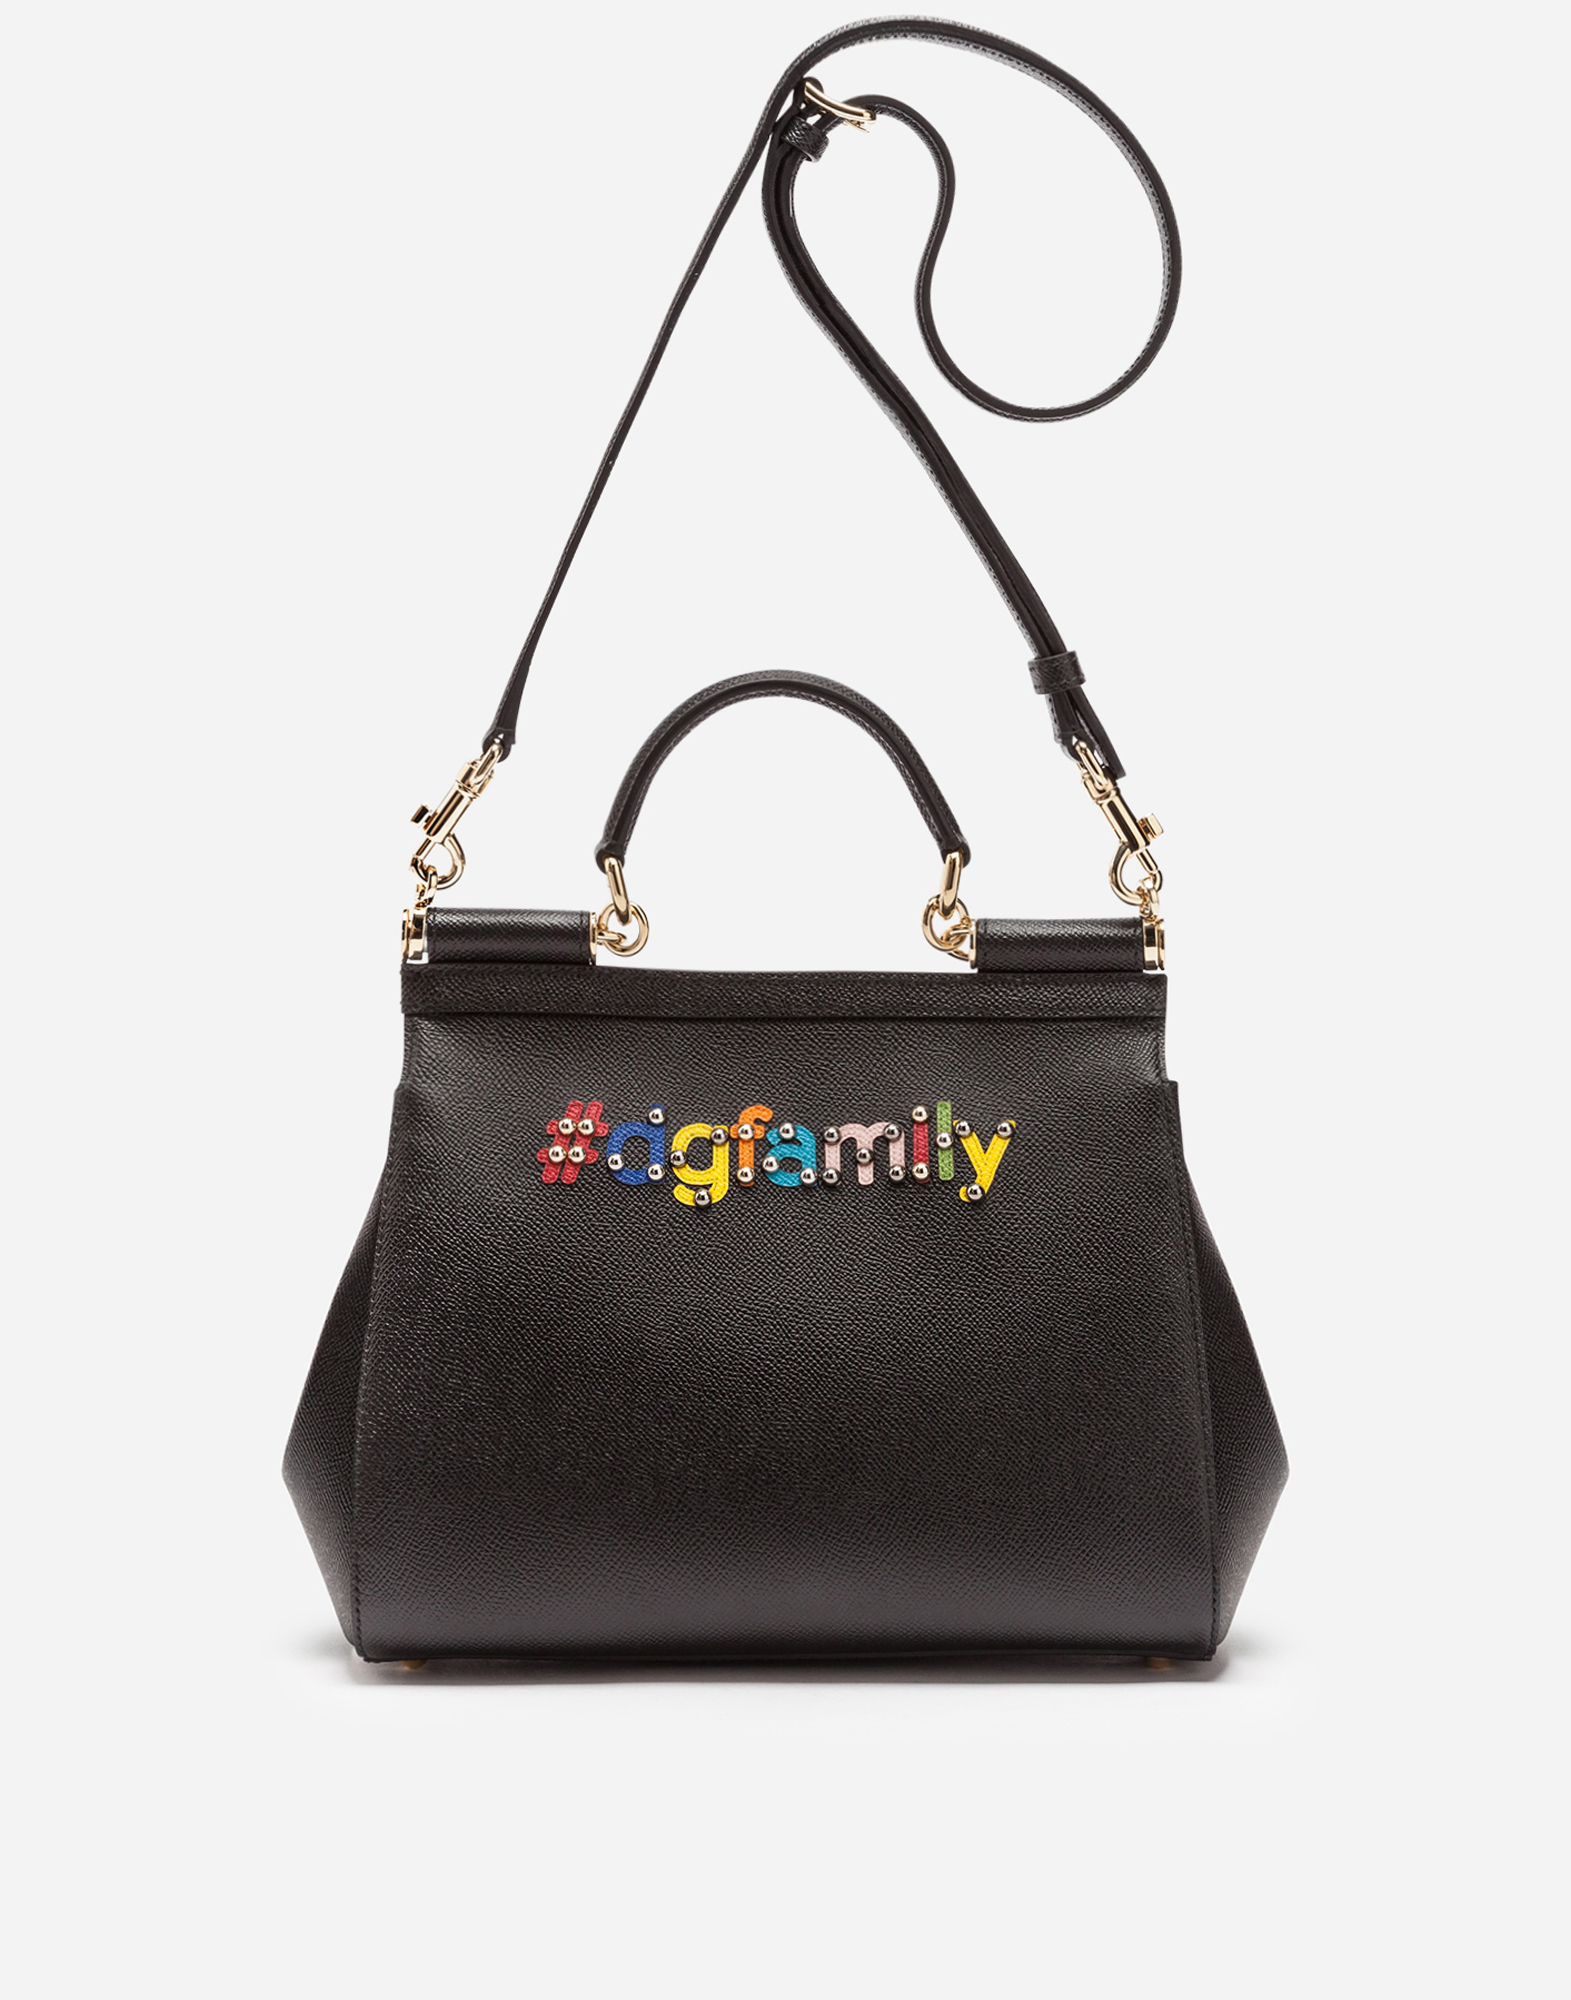 Dolce & Gabbana MEDIUM SICILY BAG IN DAUPHINE CALFSKIN WITH PATCHES OF THE DESIGNERS